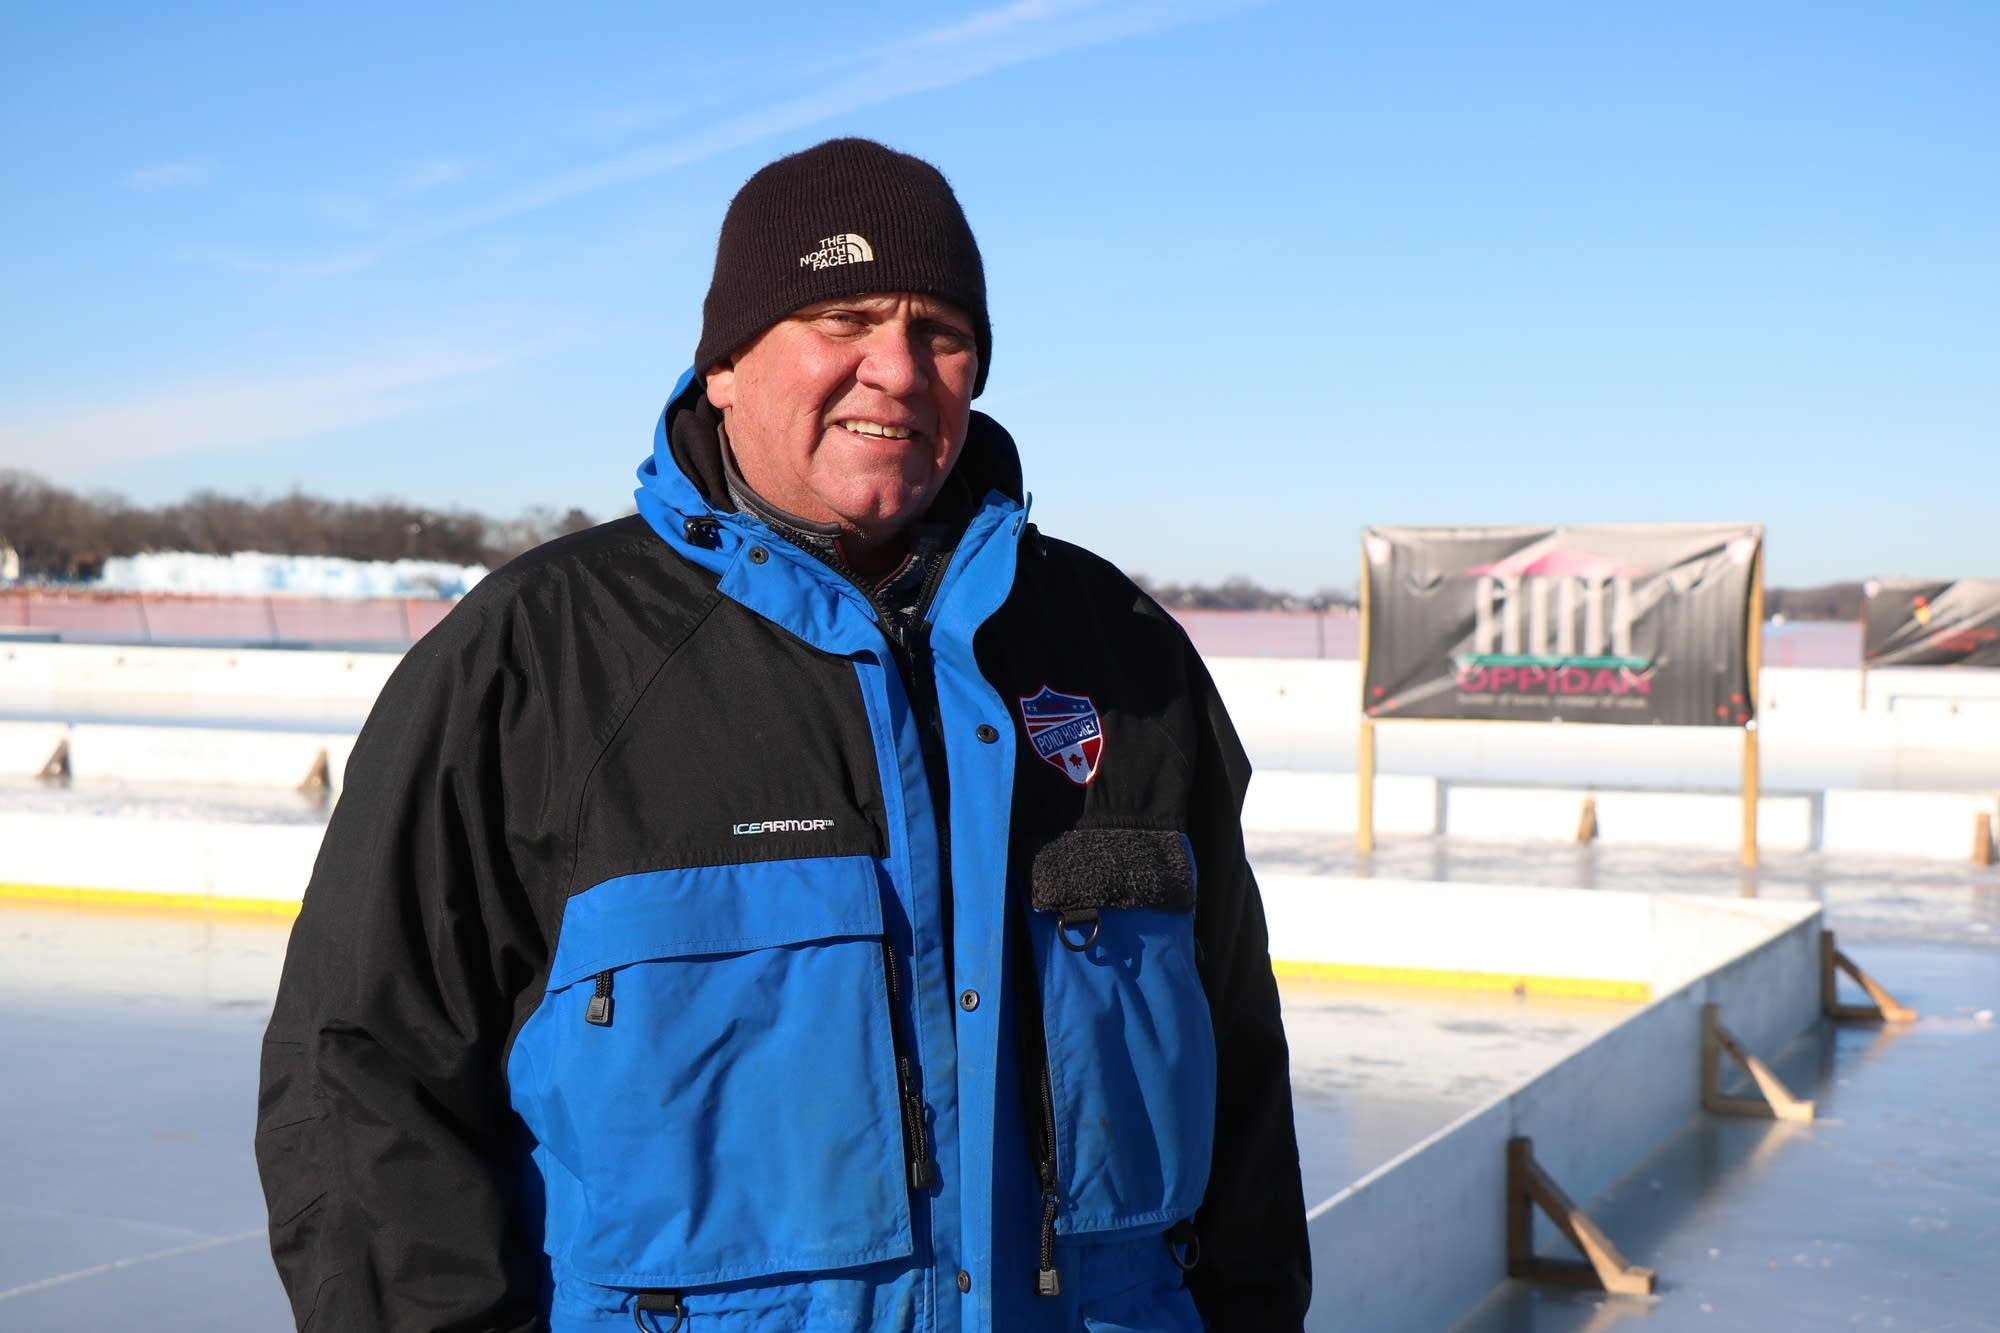 Tim Jenzer, ice director for the North American Pond Hockey Championship